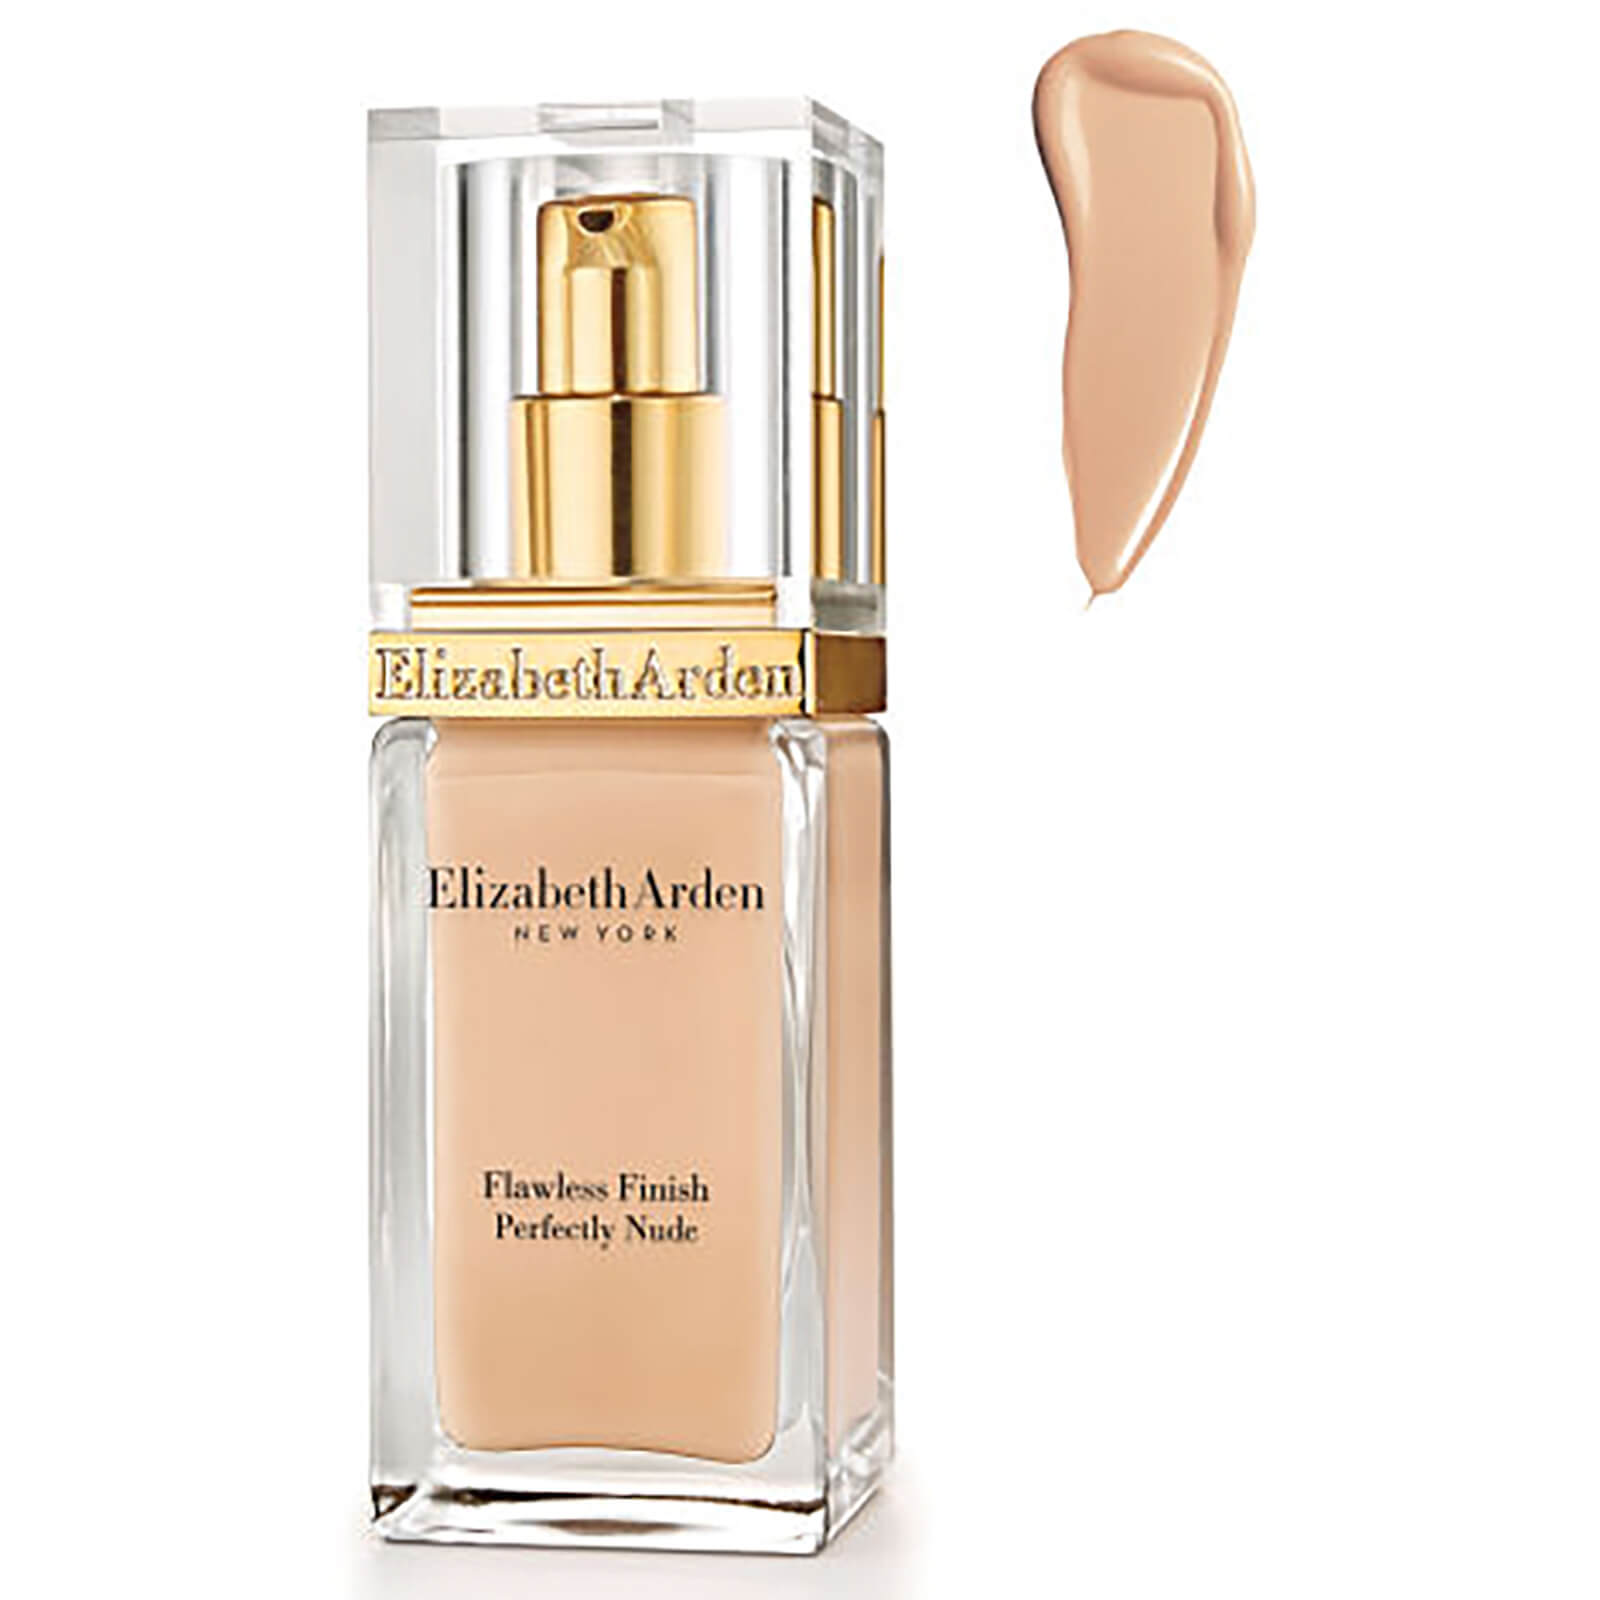 Elizabeth Arden Flawless Finish Perfectly Nude SPF15 Make Up 30ml - Natural 05